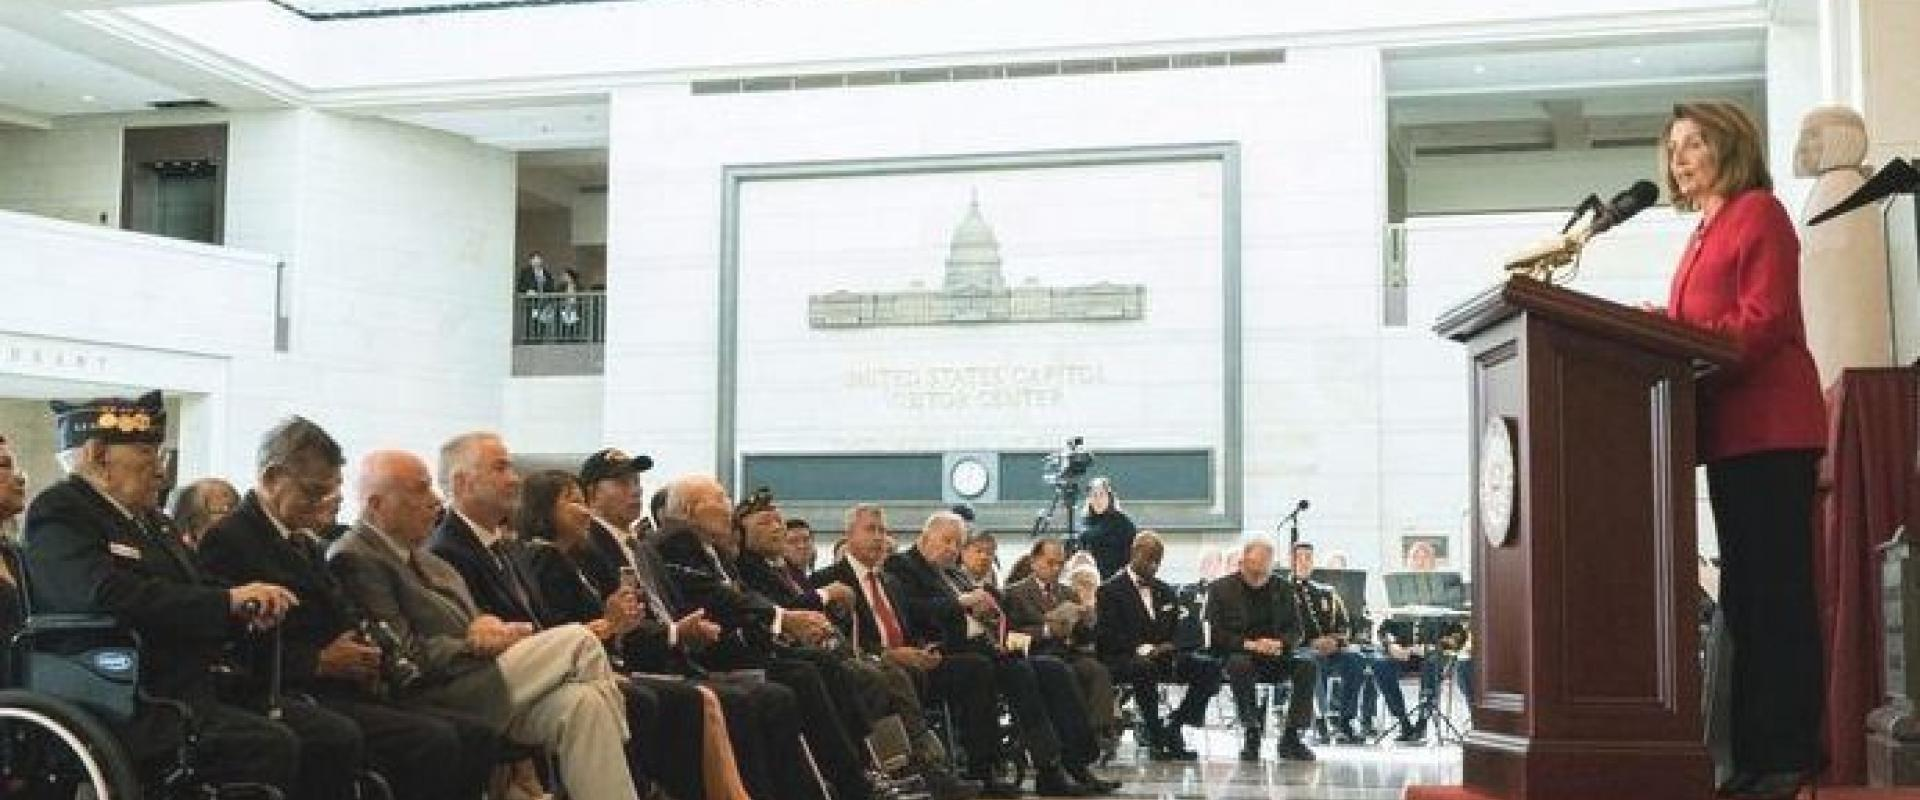 Congresswoman Pelosi delivers remarks at the Congressional Gold Medal Ceremony honoring Filipino Veterans for their service and contributions made serving in World War II, including San Franciscan Dean Aquilino Delen, a Filipino veteran who attended repre